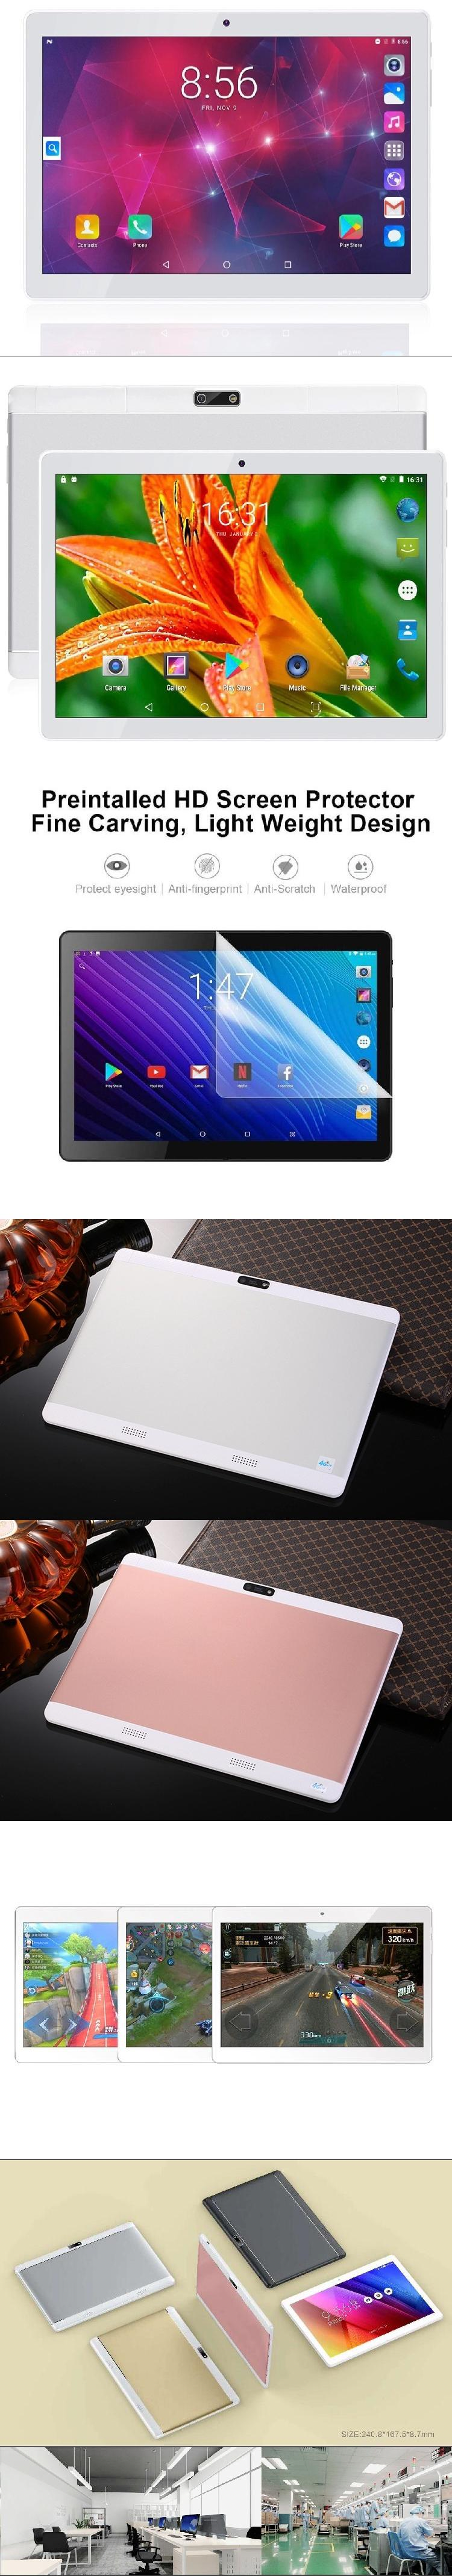 Best selling android tablet without sim card camera removable battery supplier from China android tablet